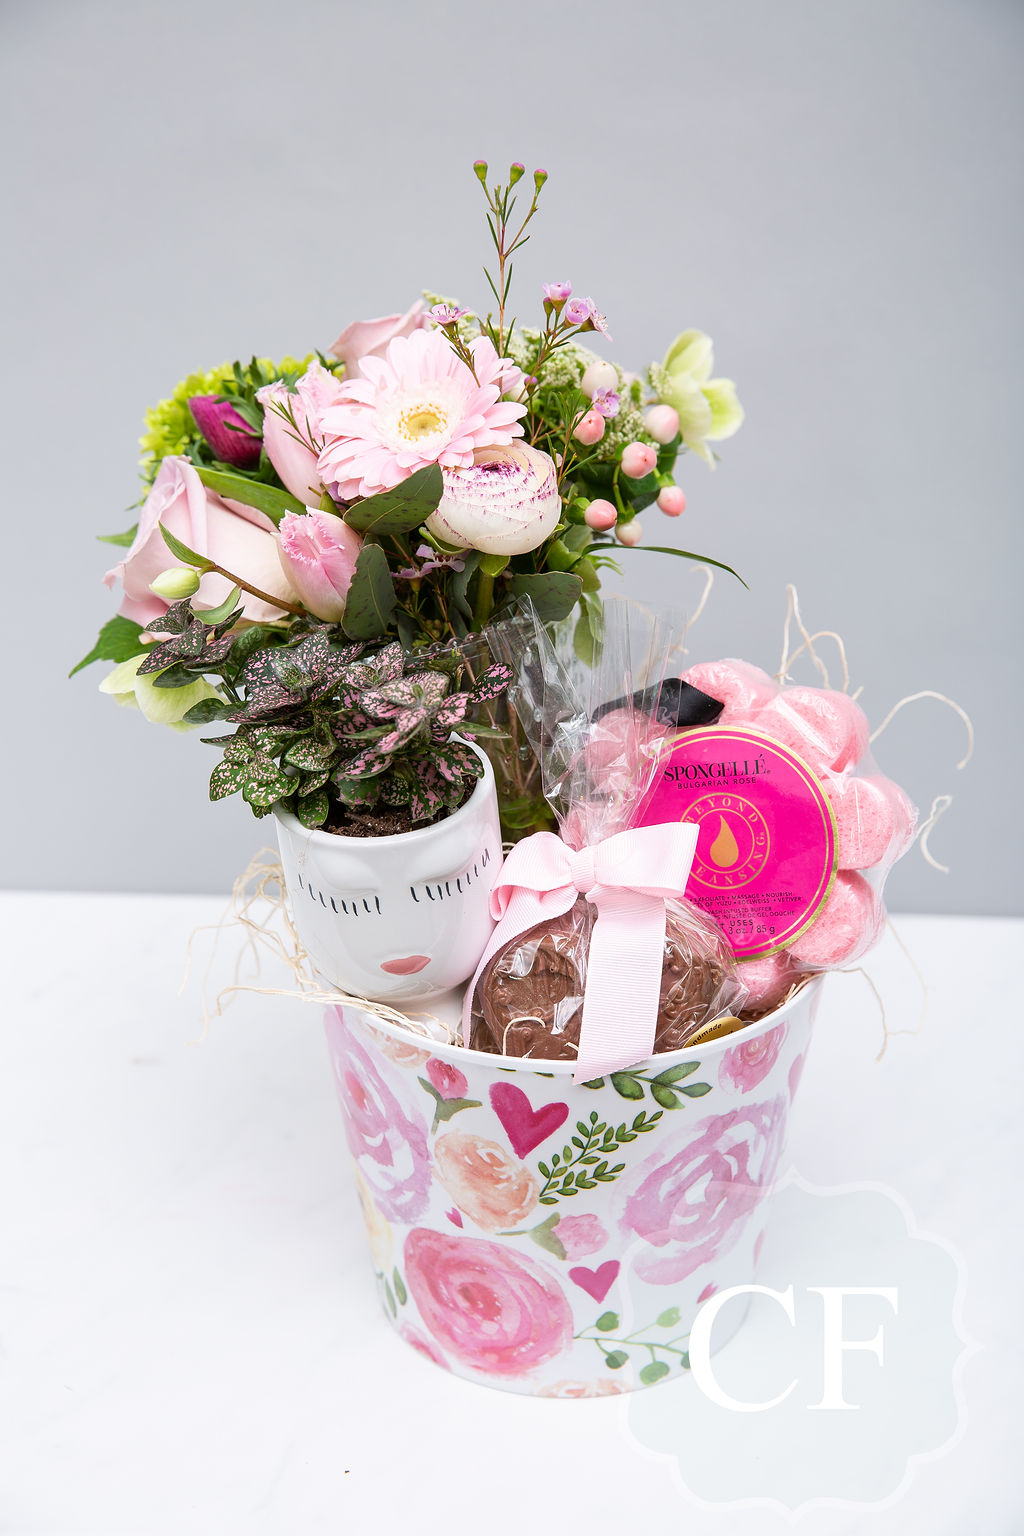 - A Mother's Love Bundle, for some light hearted treats!